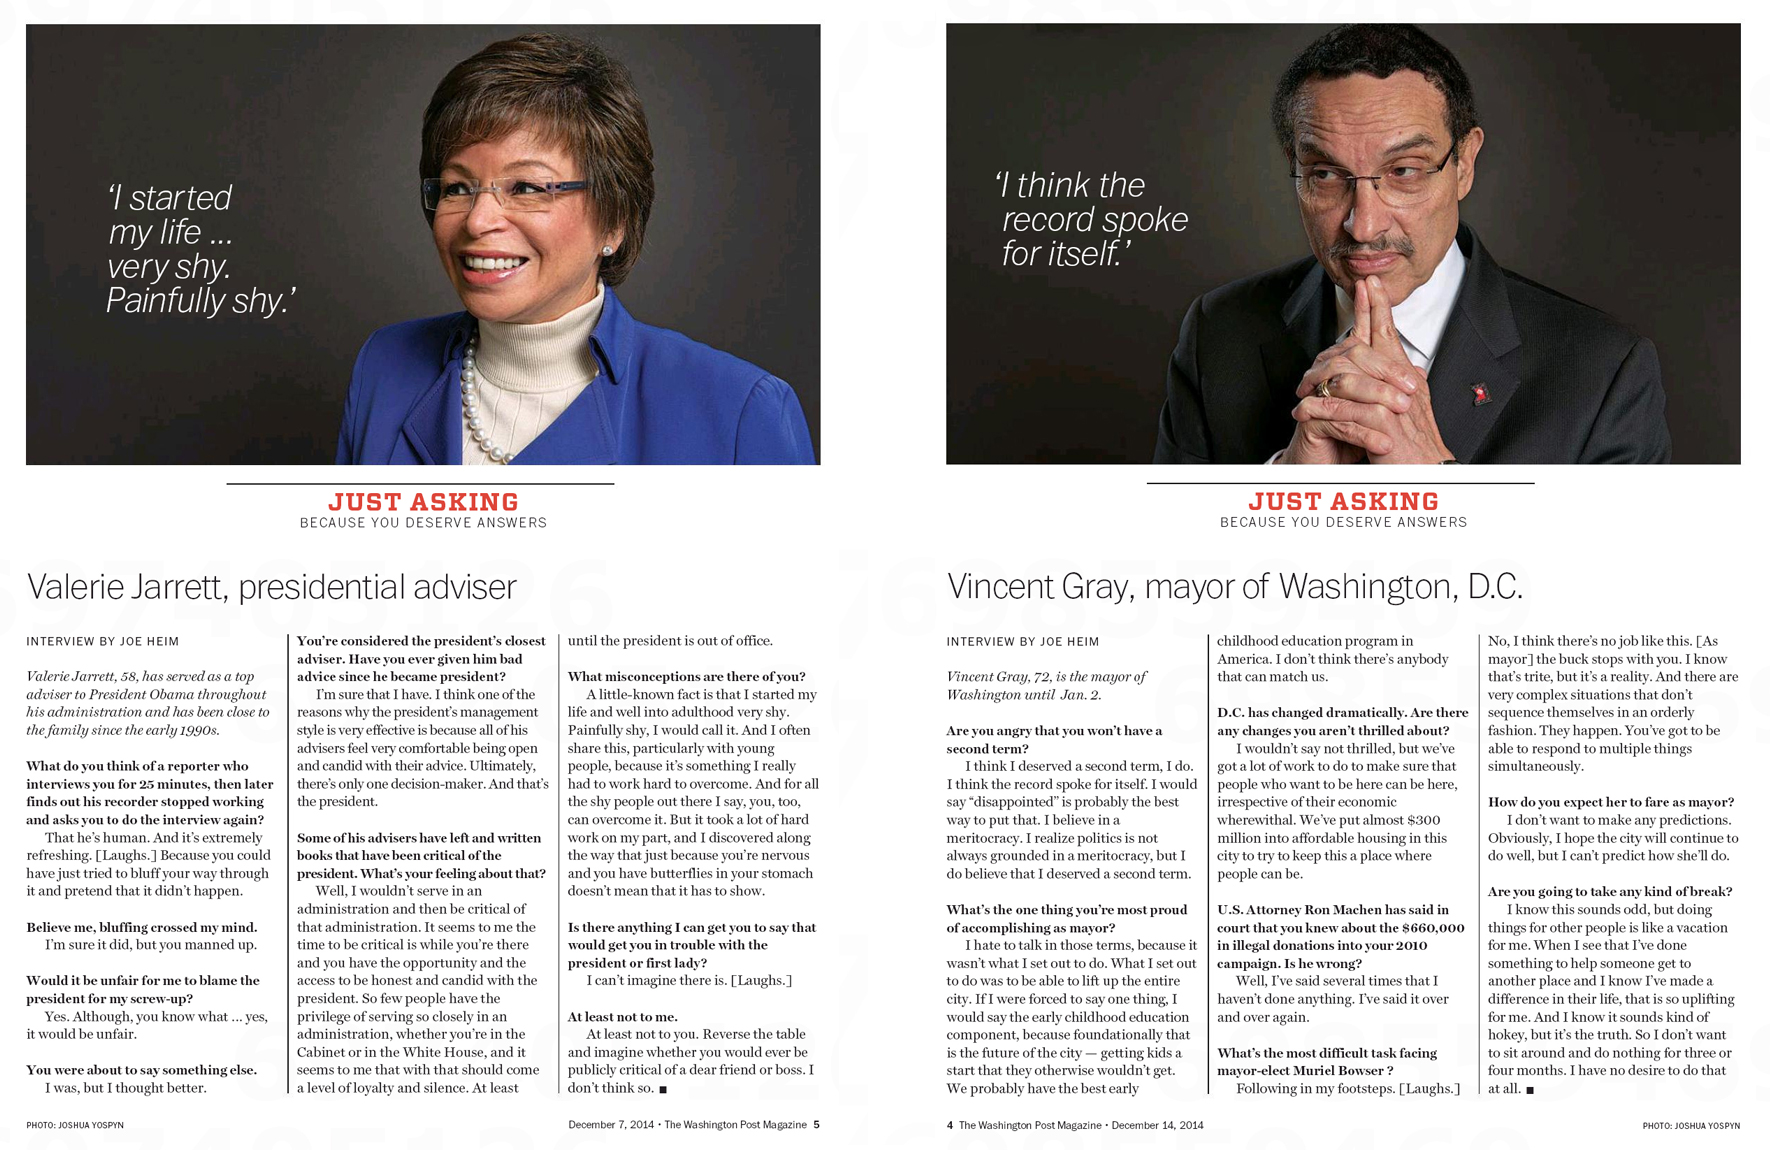 Portraits of Valerie Jarrett, adviser to President Obama, and former D.C. Mayor Vincent Gray for The Washington Post Magazine